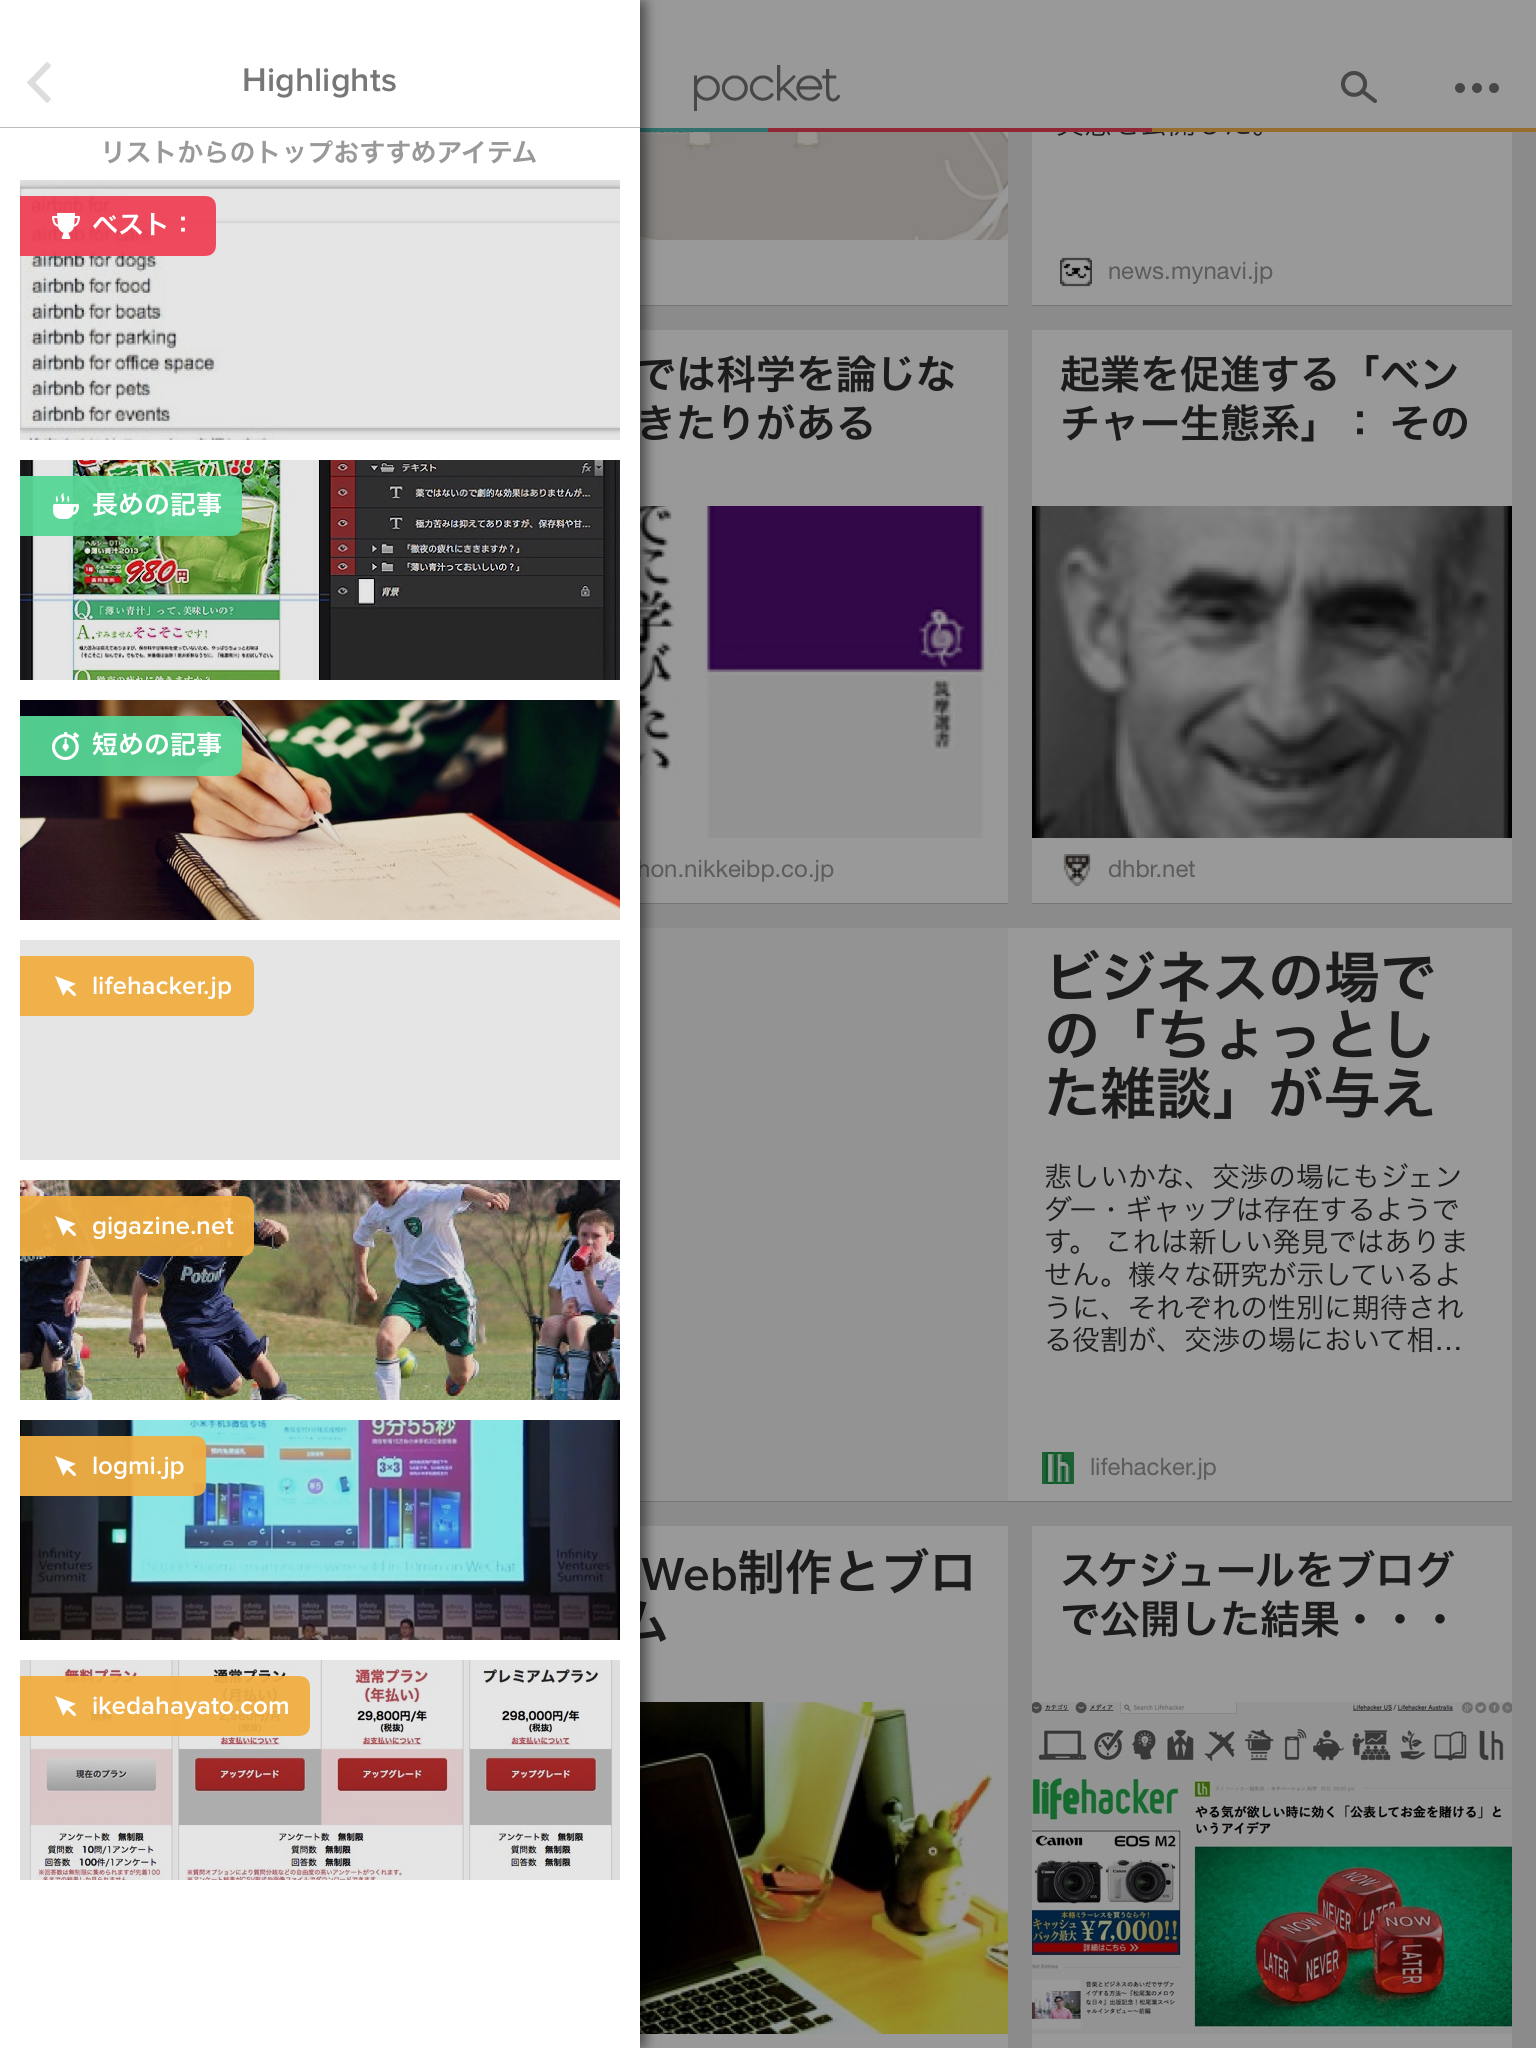 "Evernote%20Camera%20Roll%2020140901%20232652"" width="